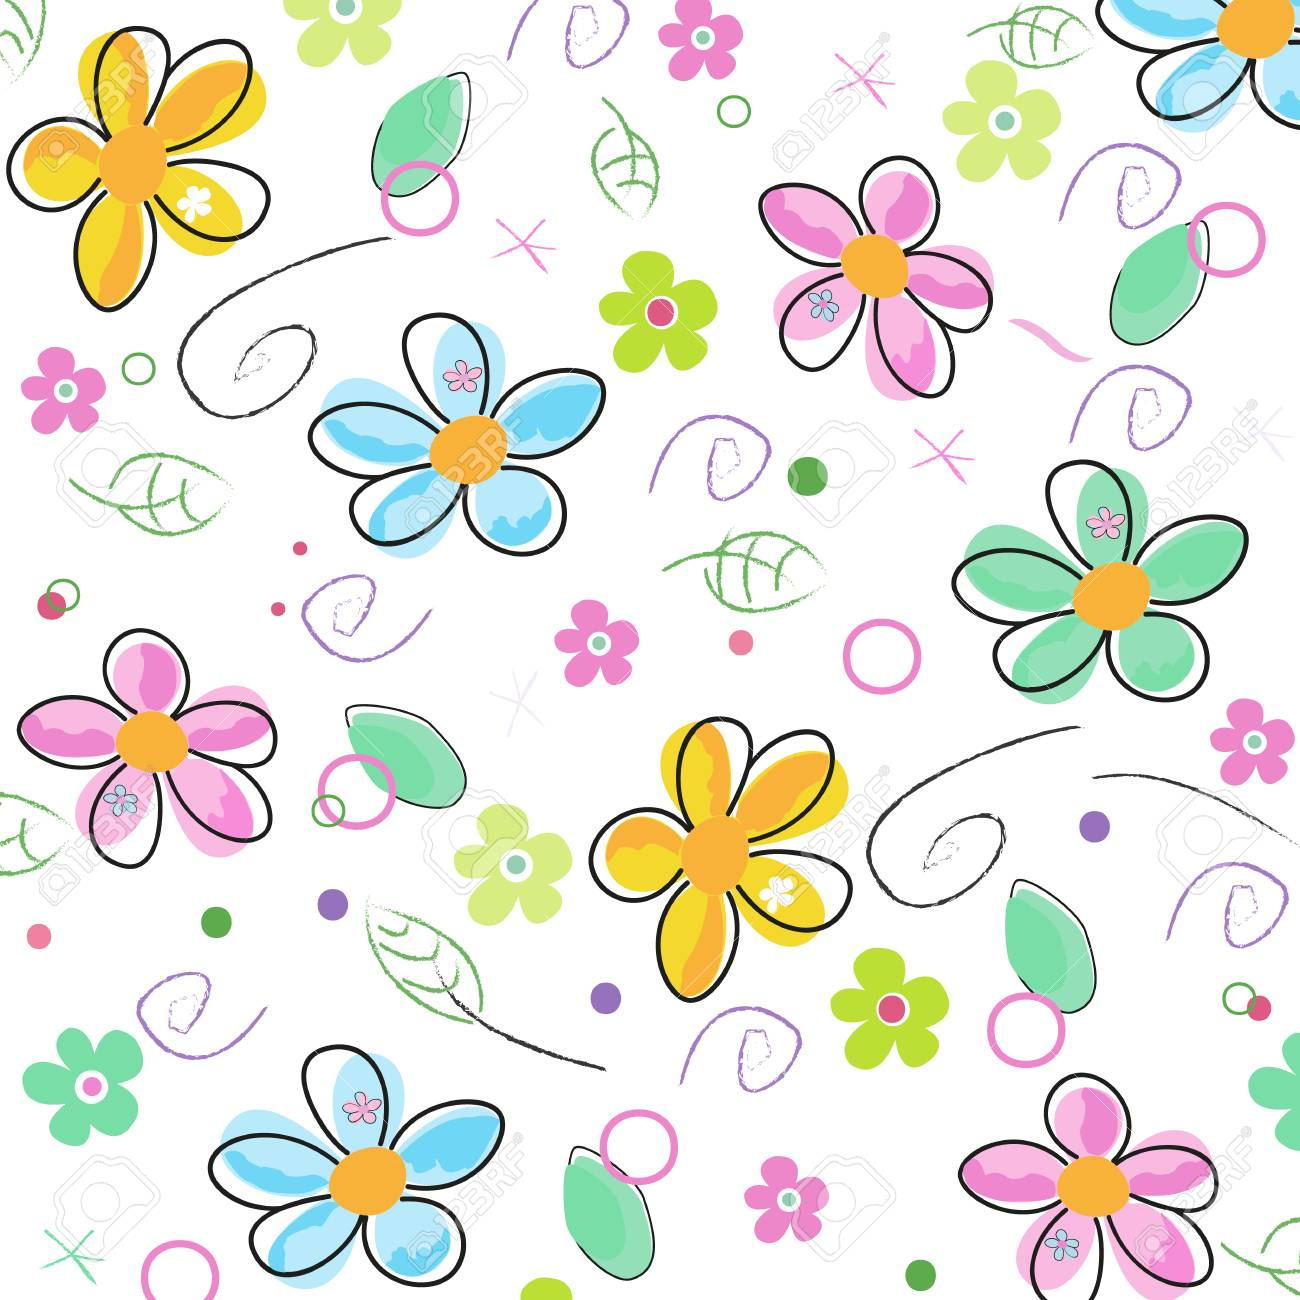 Colorful doodle spring flowers background.